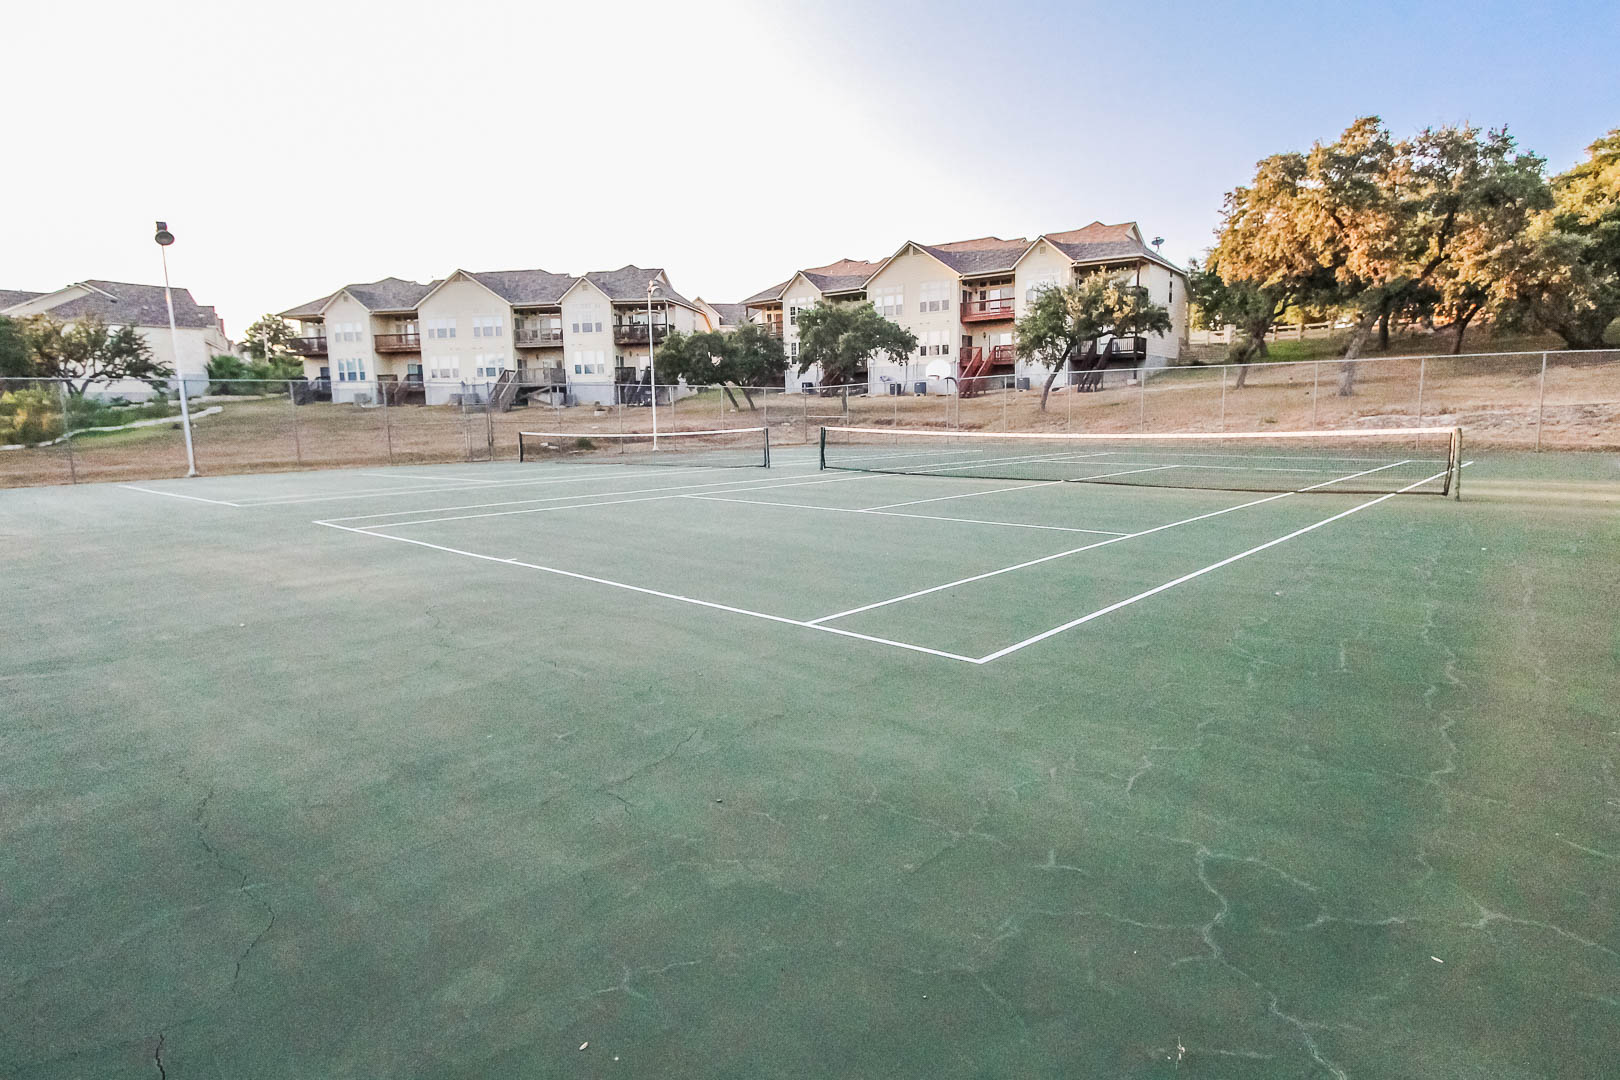 An inviting tennis court at VRI's Vacation Village at Lake Travis in Texas.